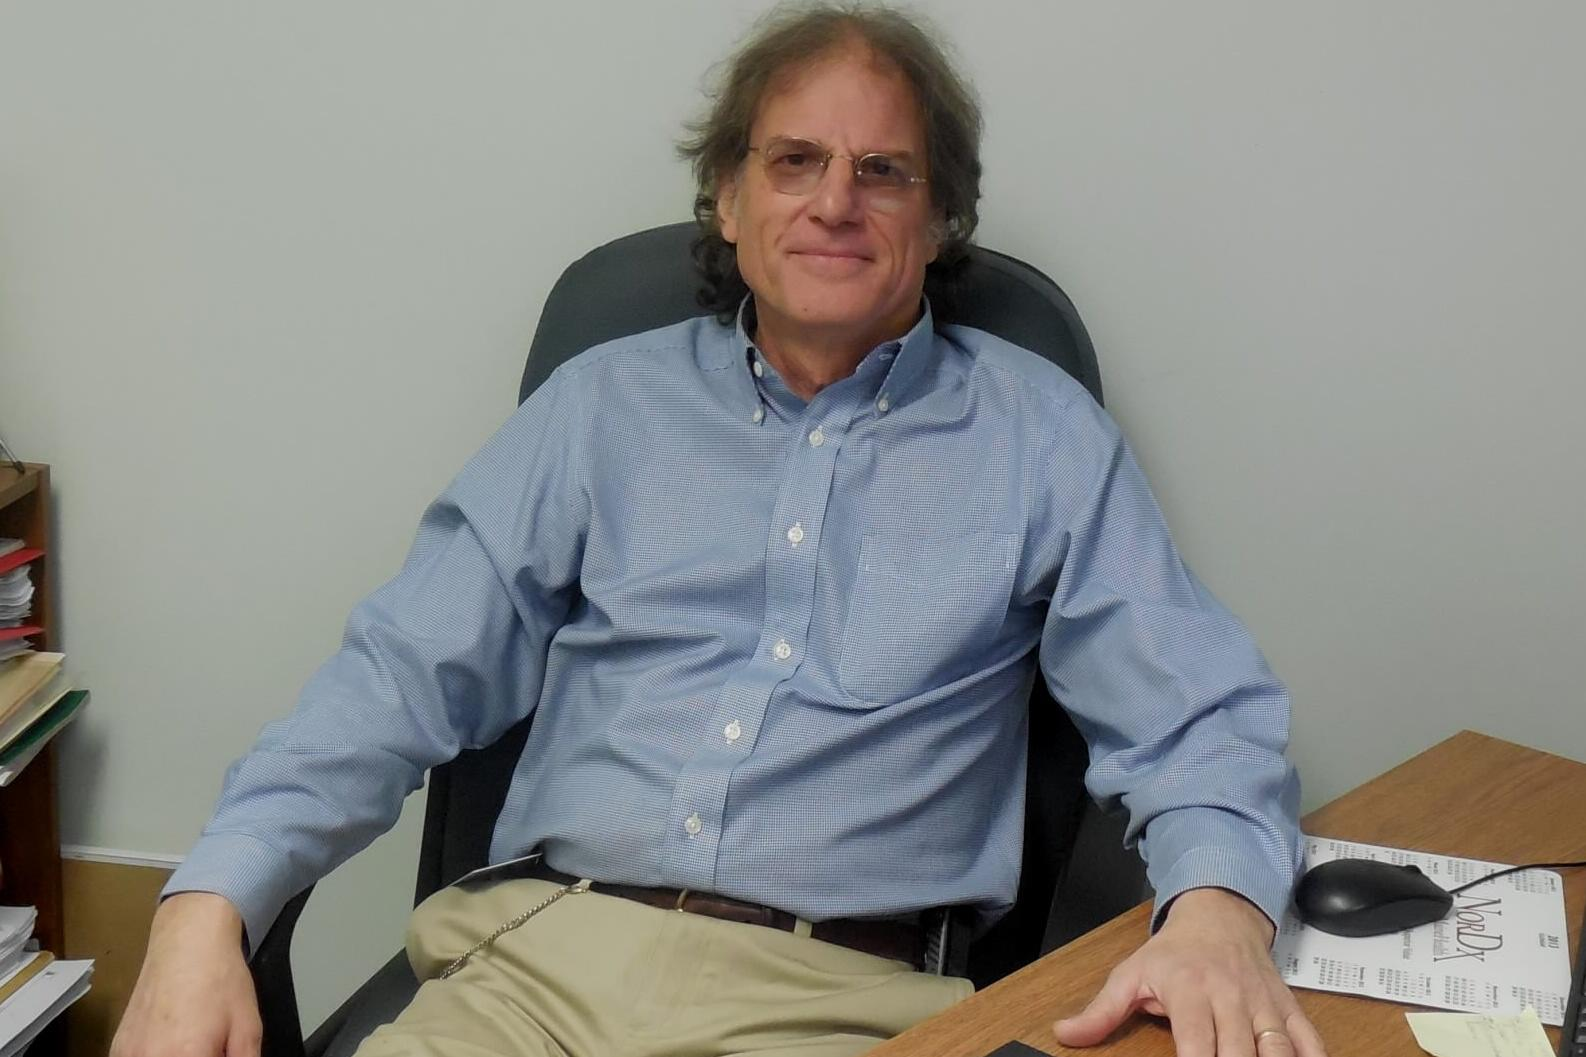 Dr. Ted Sussman